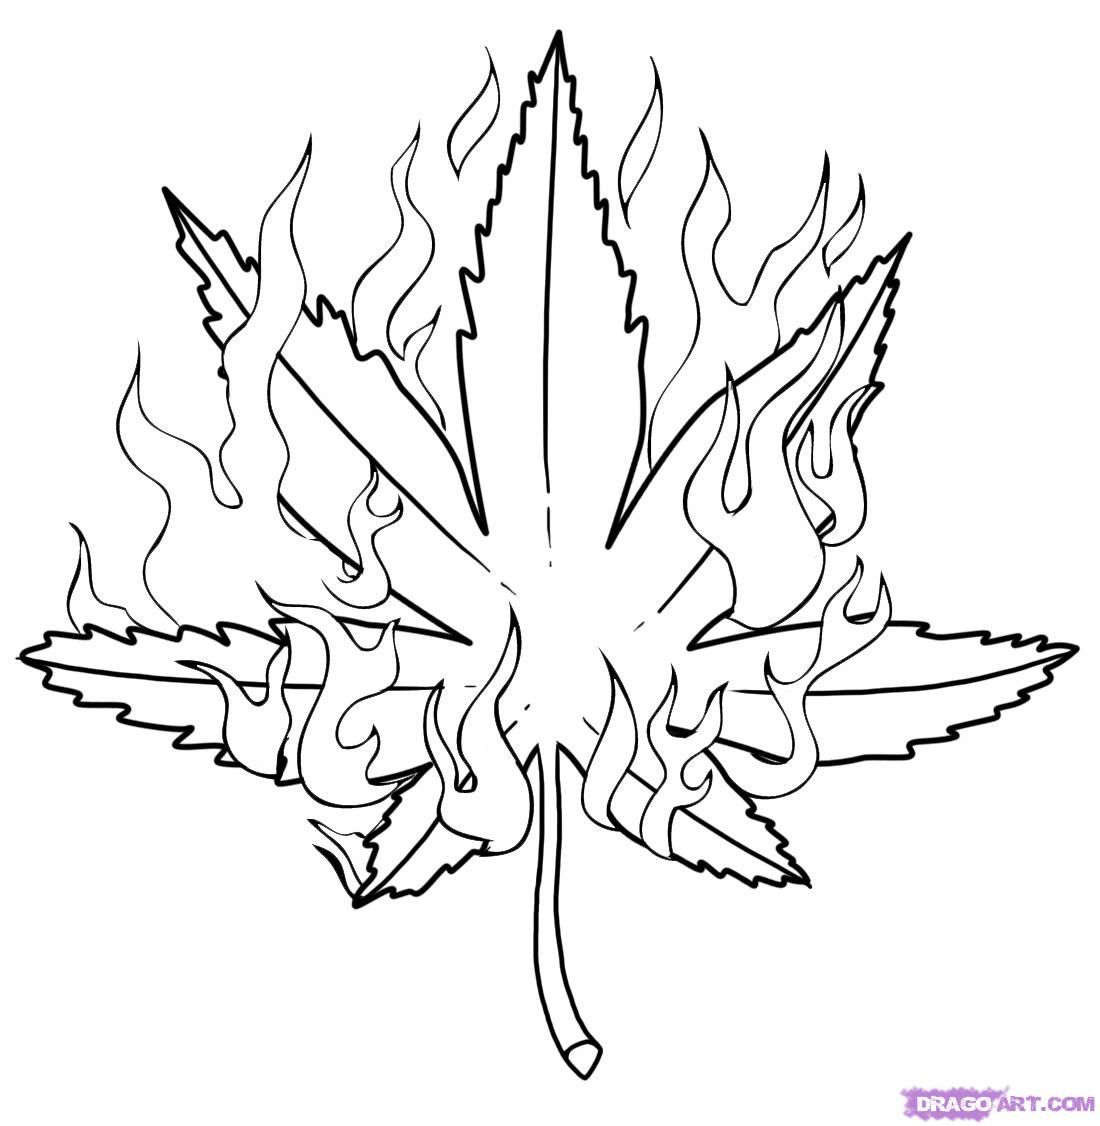 1000 images about puff puff pass on pinterest weed cannabis